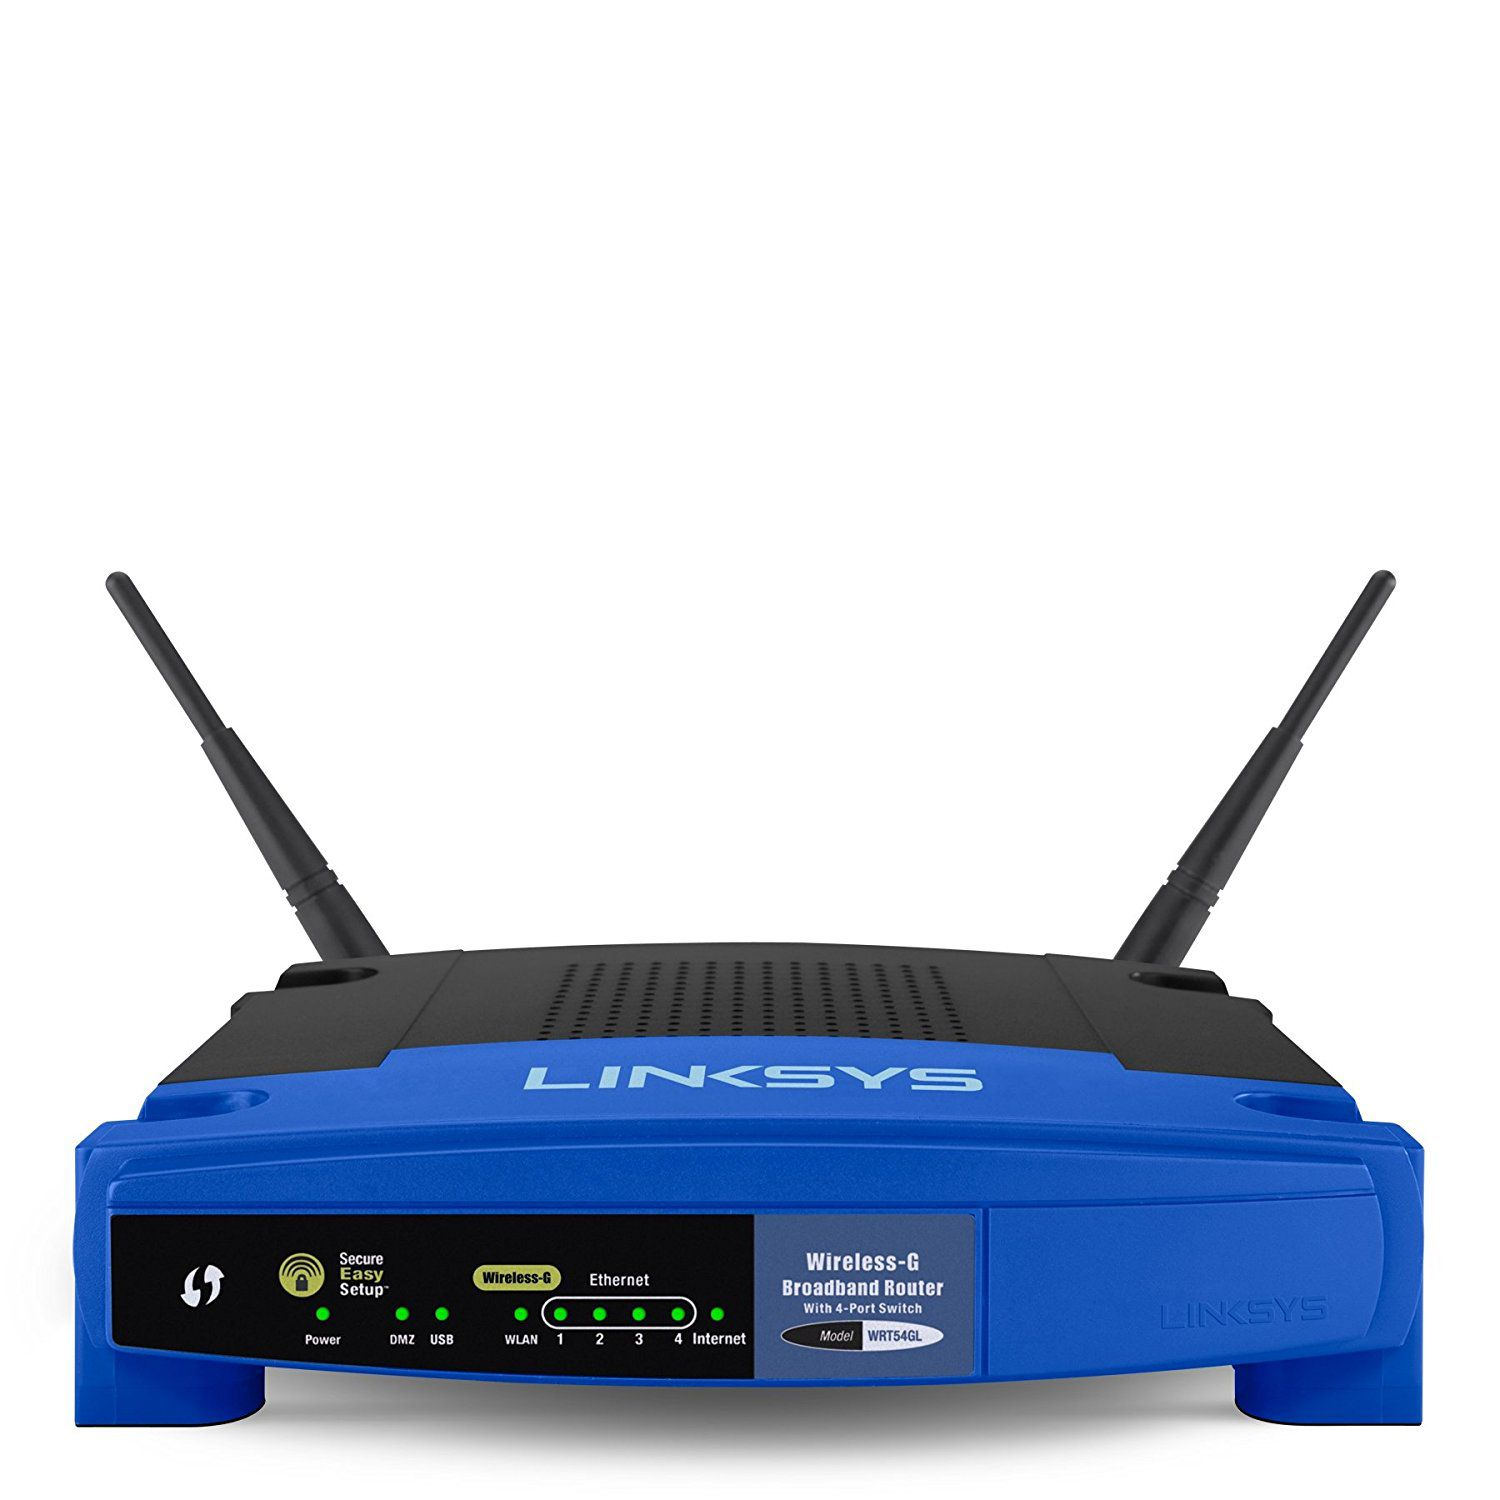 The 7 best 80211g wireless broadband routers to buy in 2018 greentooth Image collections